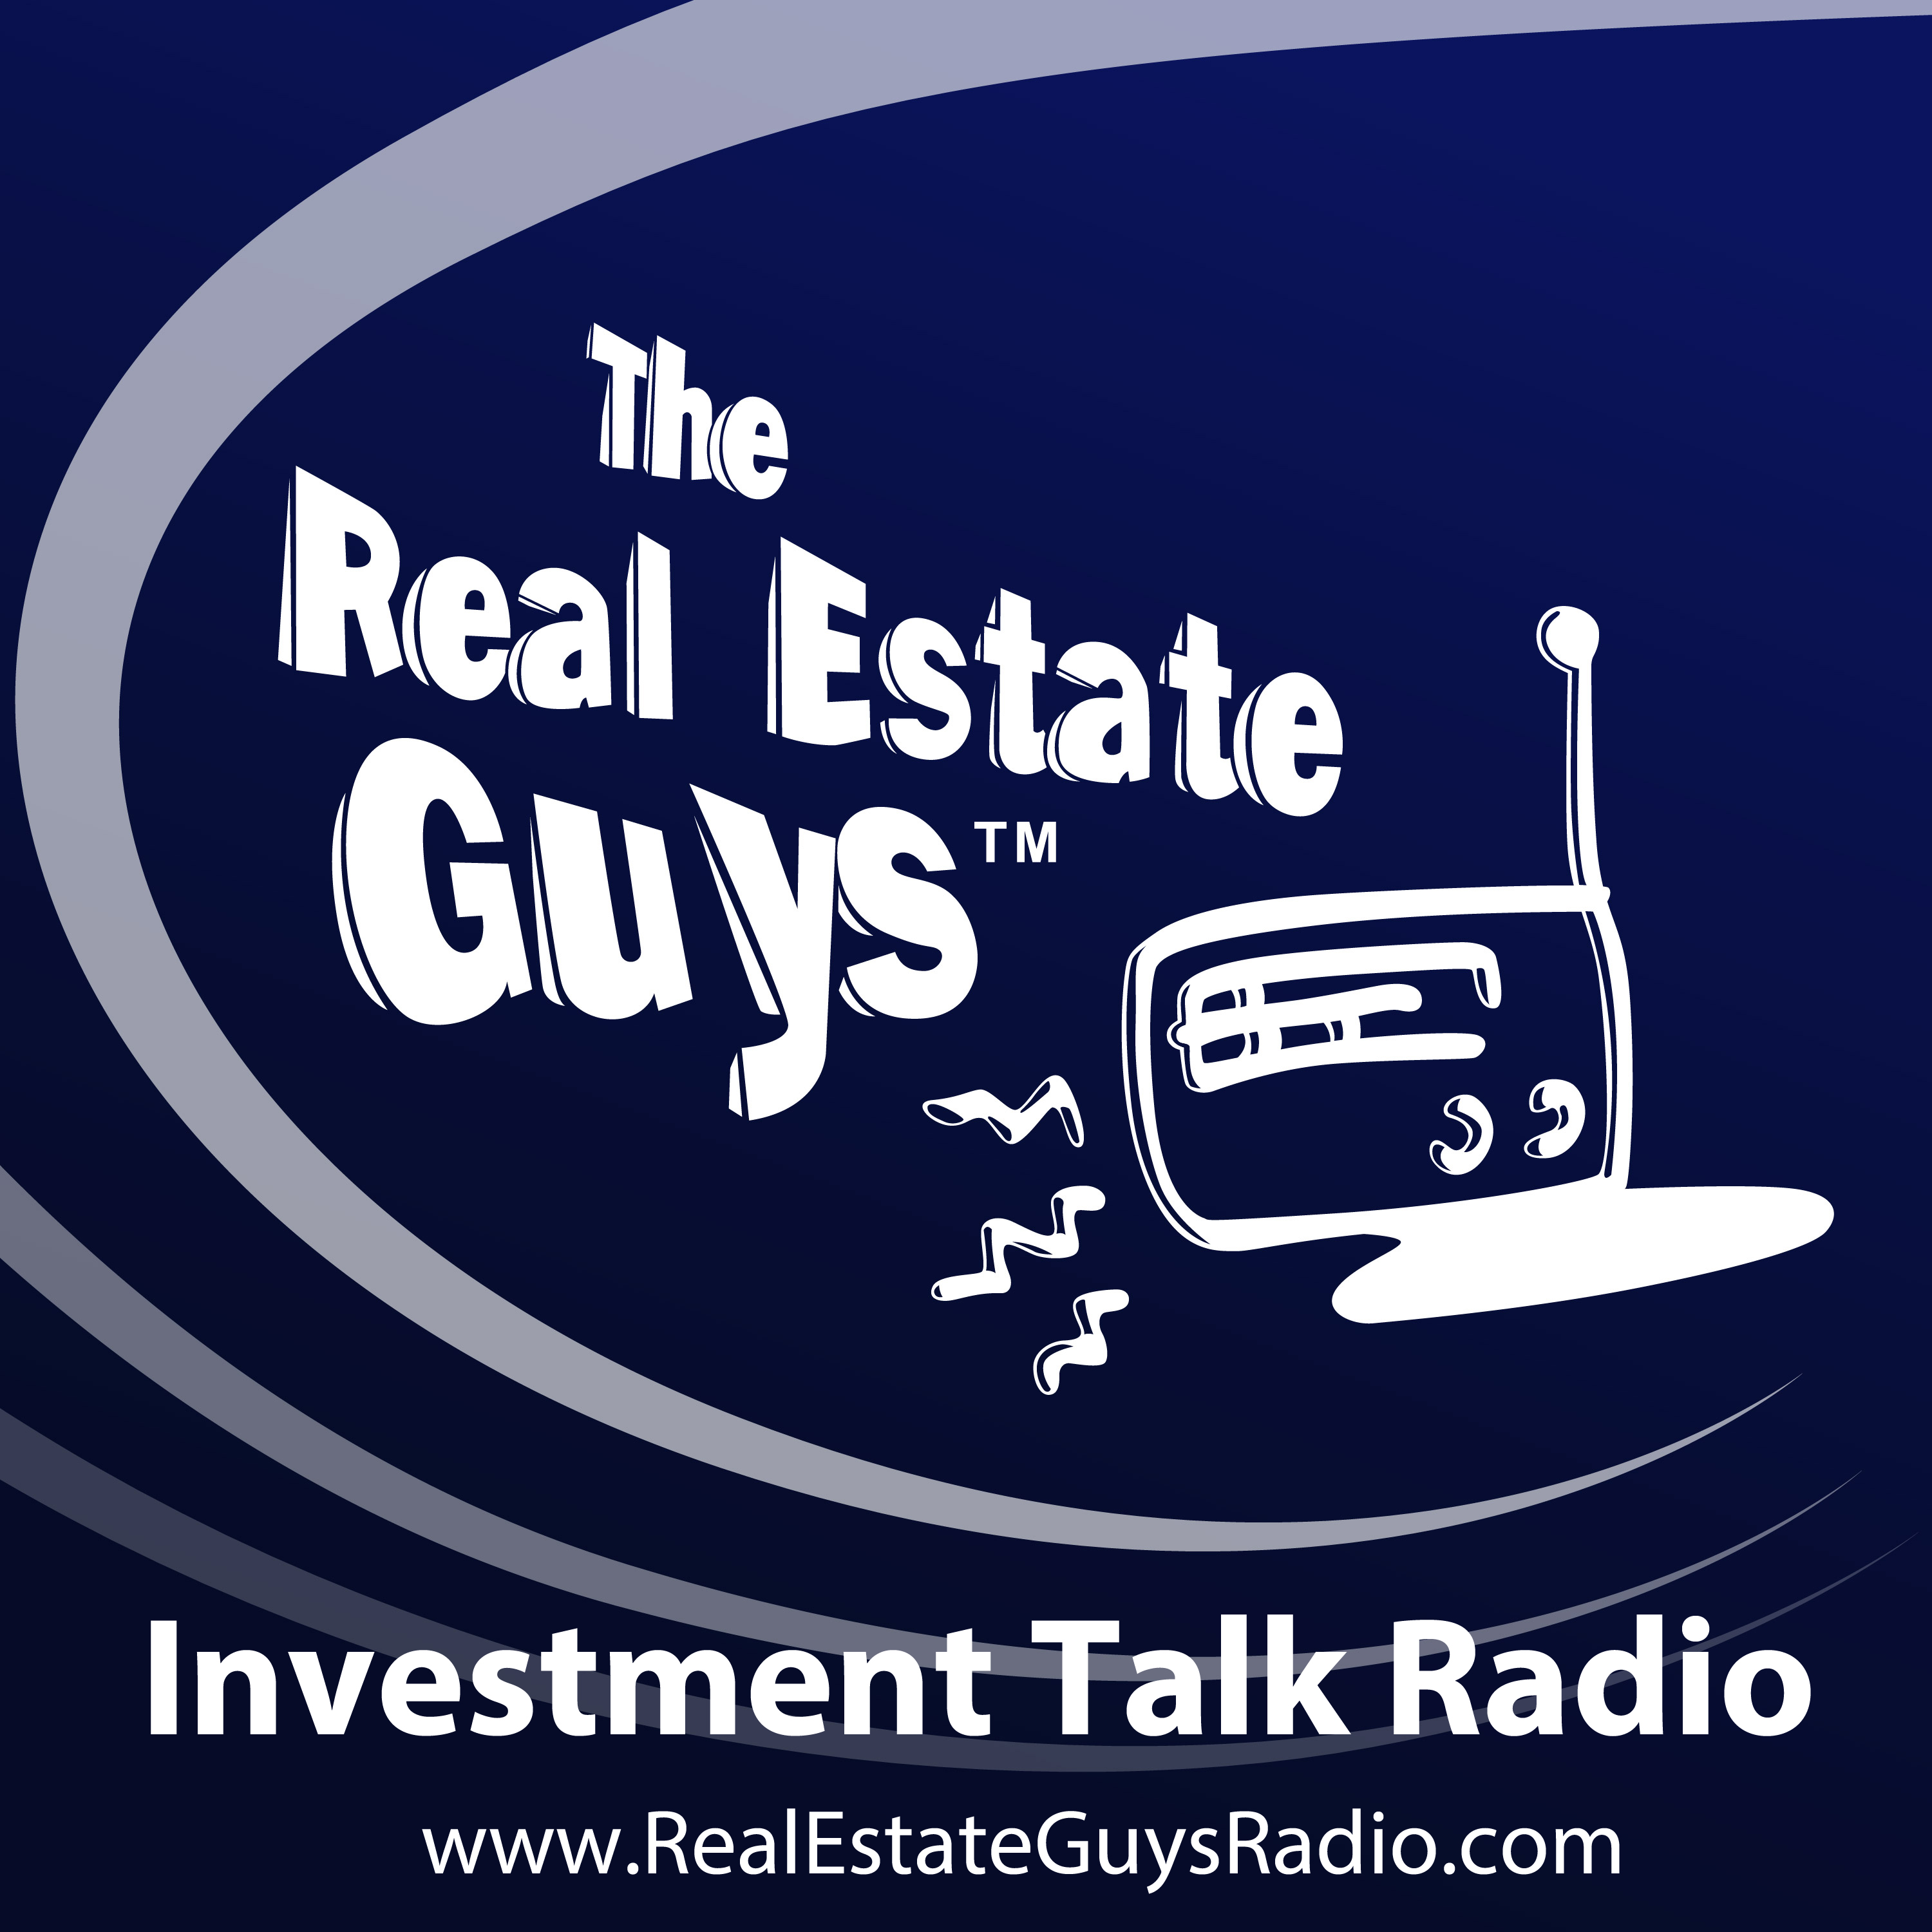 The Real Estate Guys Radio Show - Real Estate Investing Education for Effective Action logo